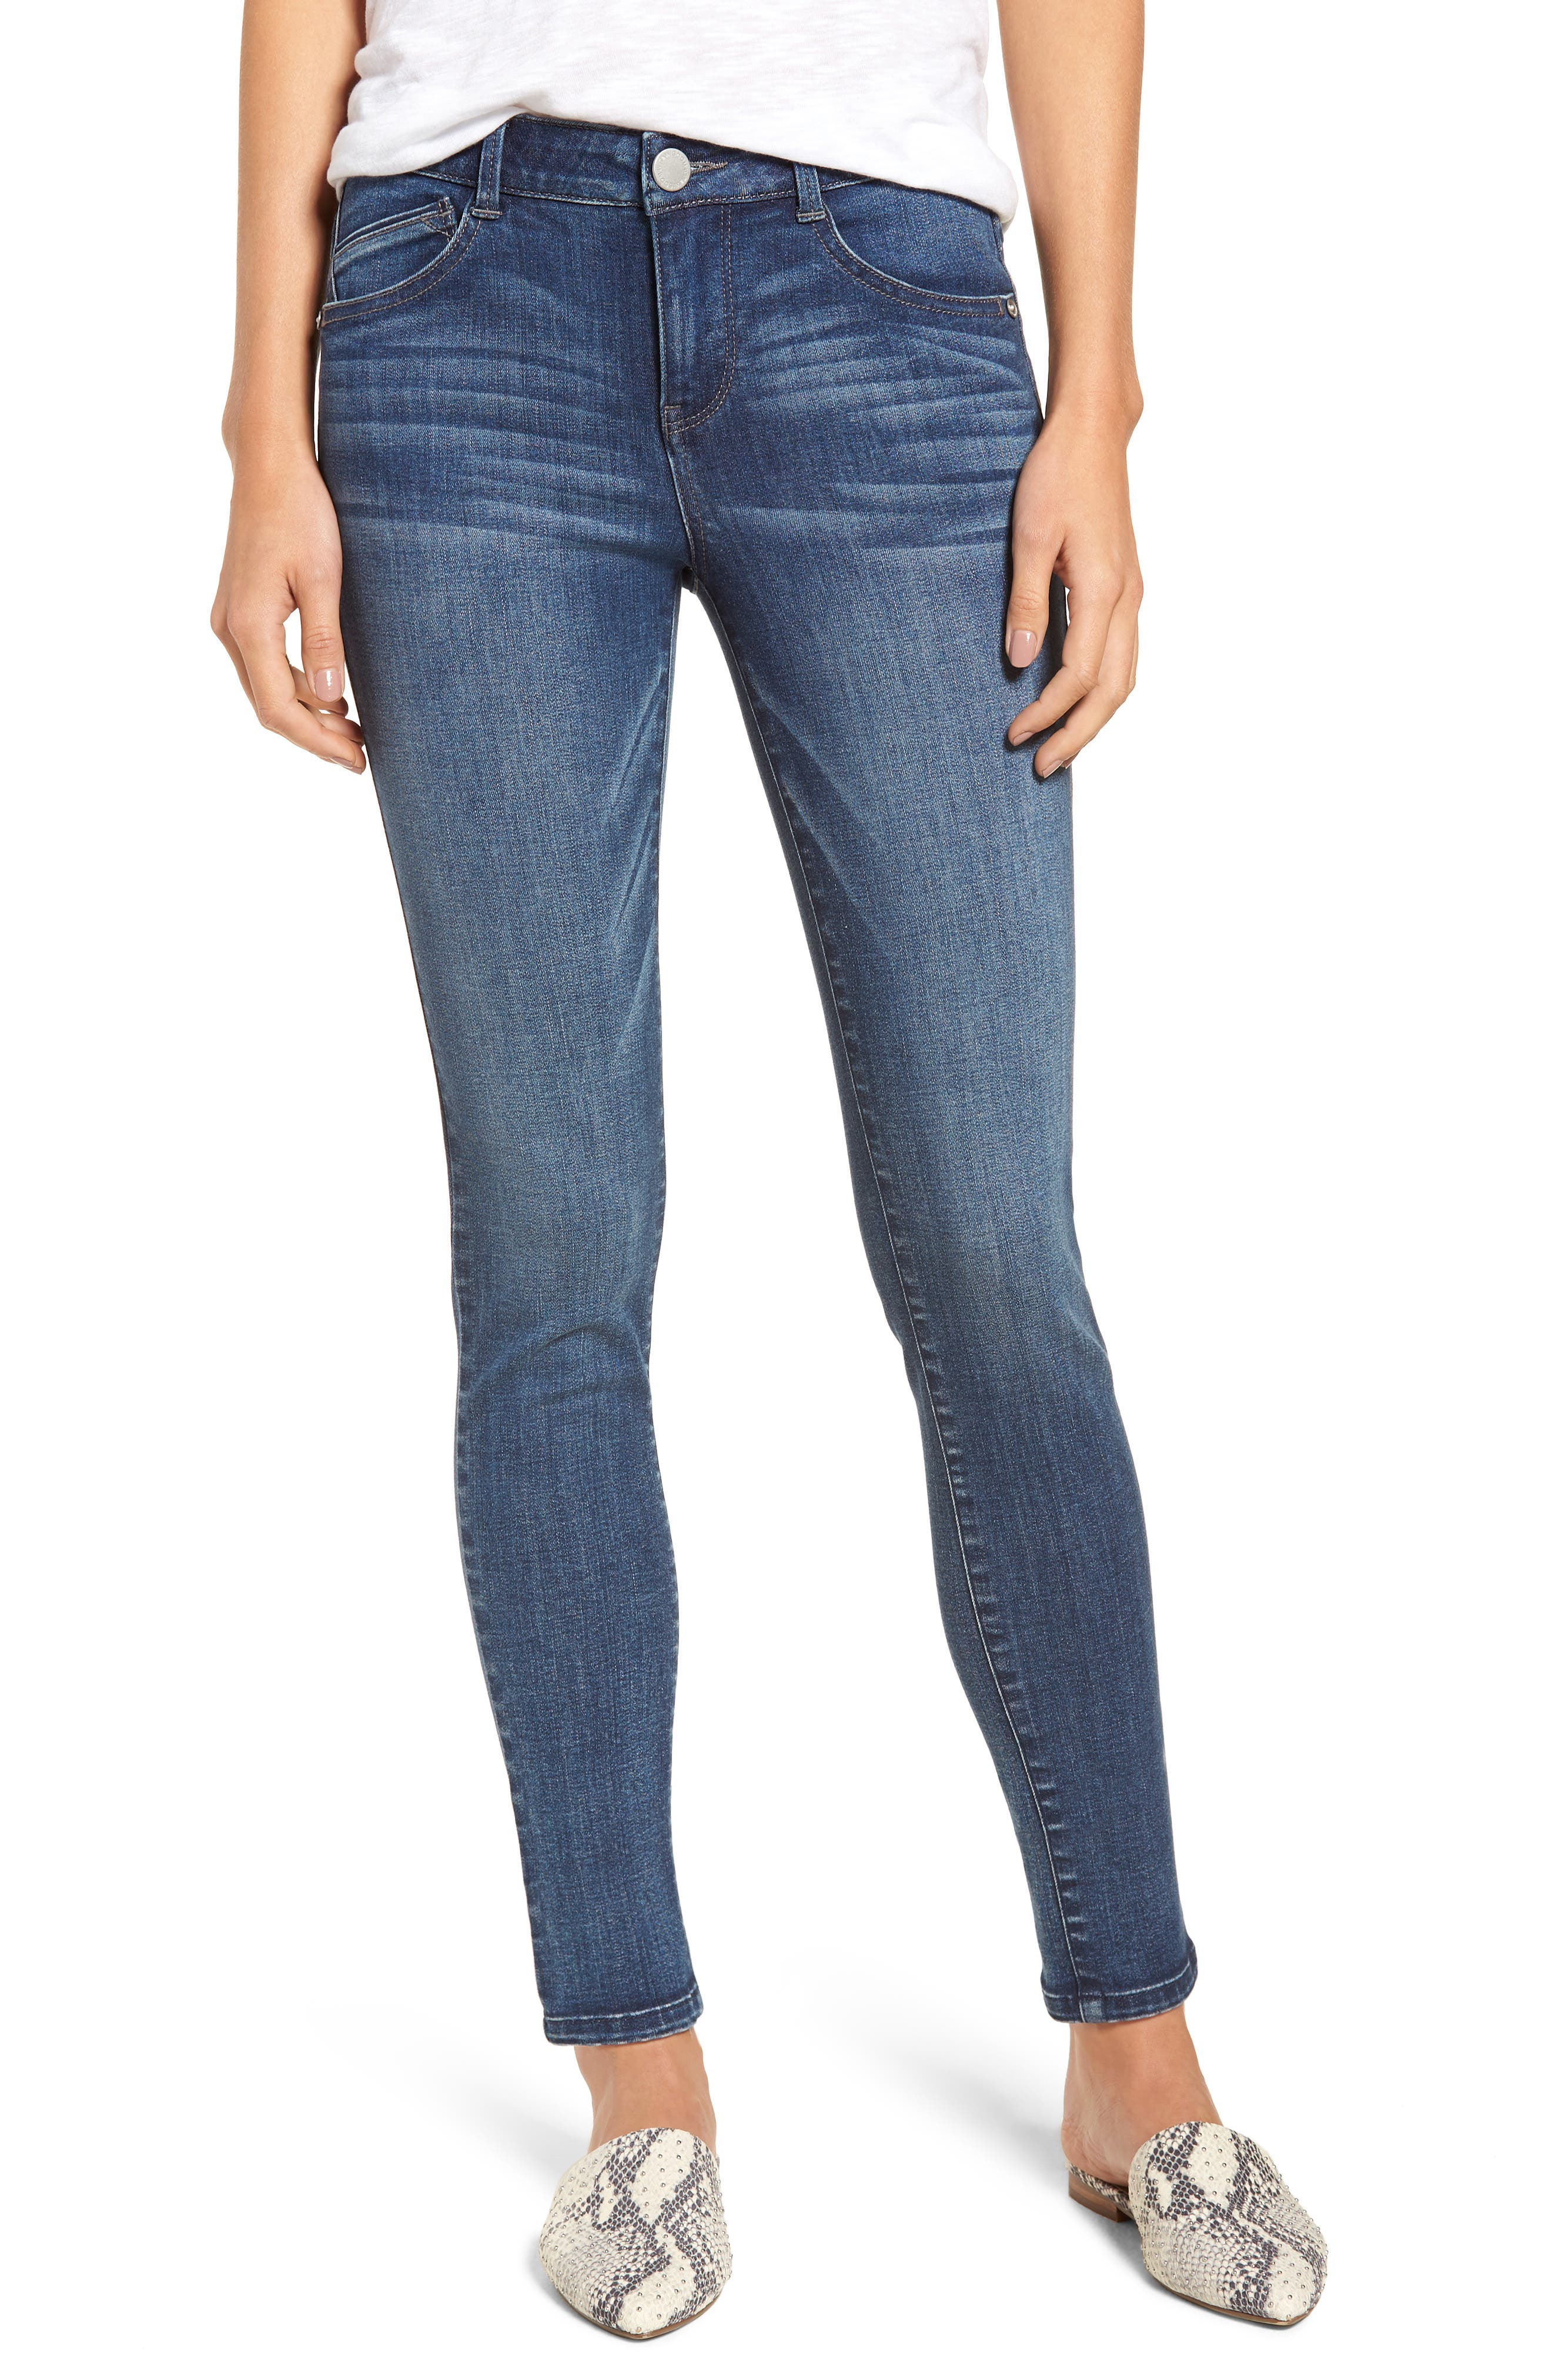 Ab-solution Ankle Skinny Jeans,                             Main thumbnail 1, color,                             420